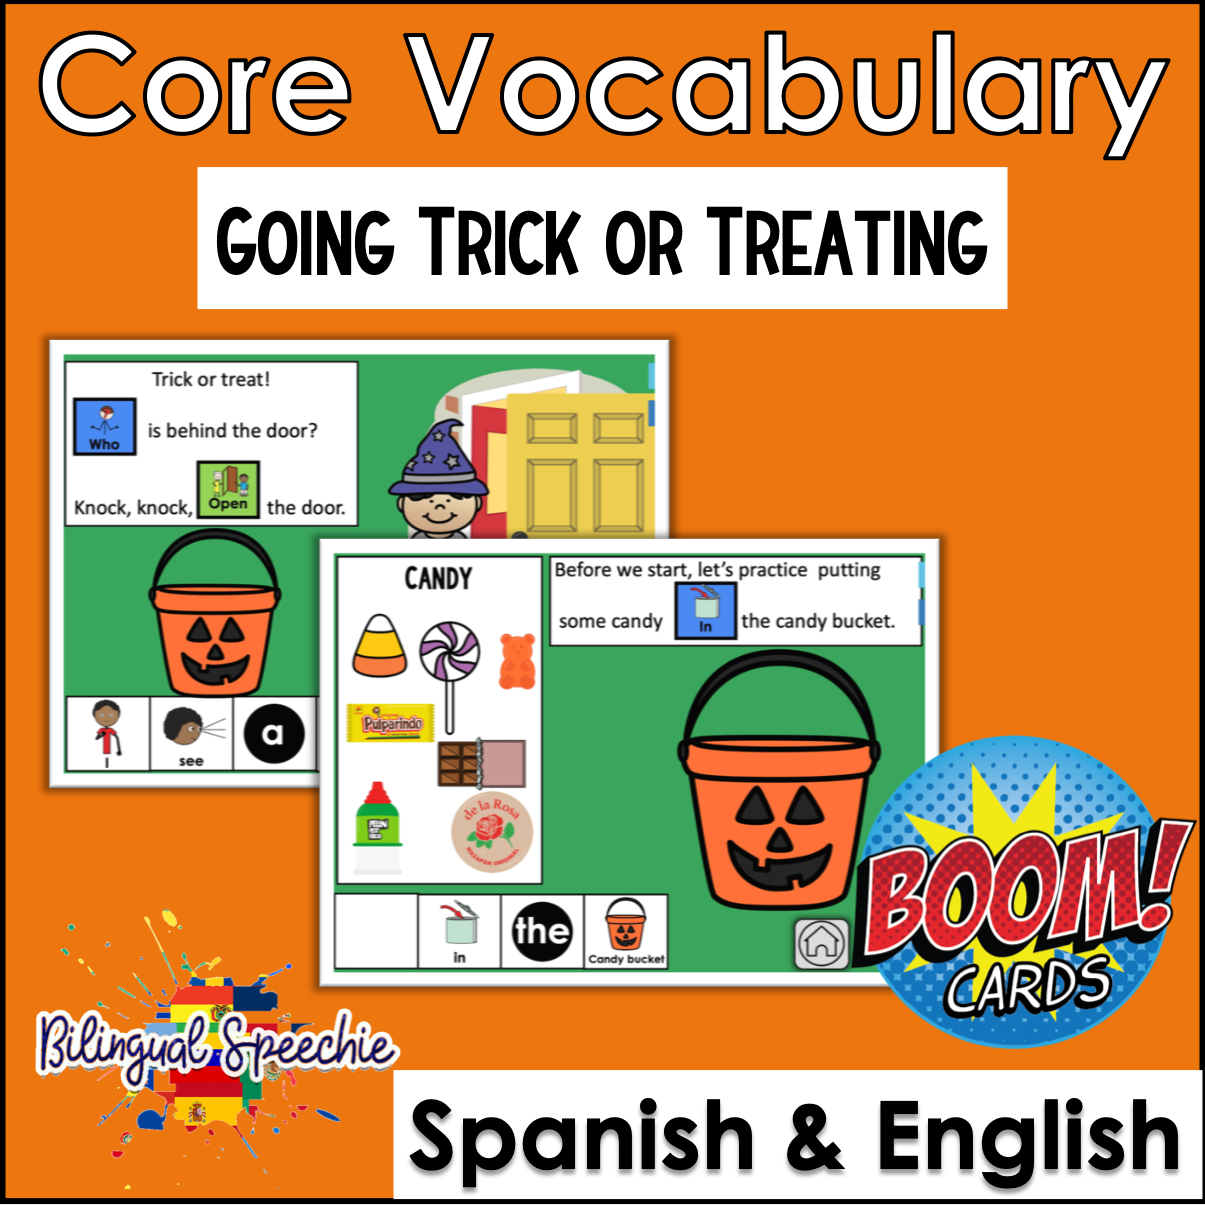 English & Spanish | Trick or Treating with Core Vocabulary